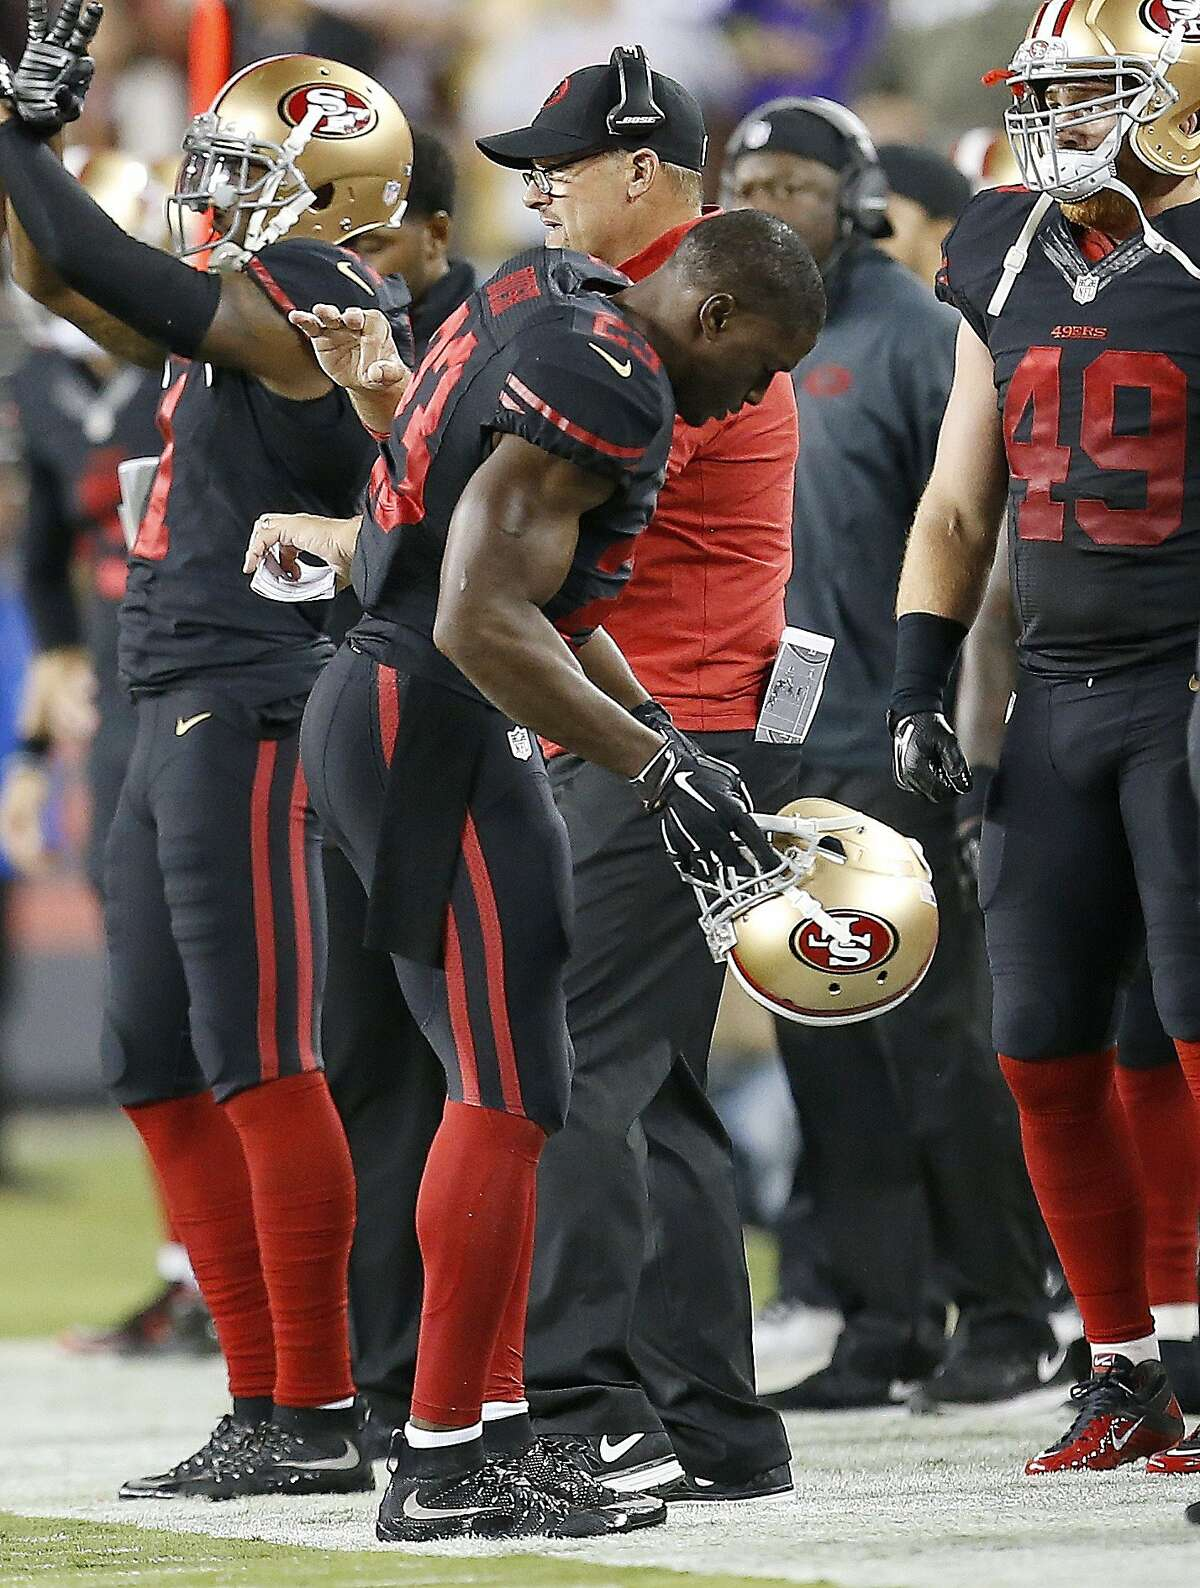 San Francisco 49ers running back Reggie Bush walks to the sideline during the first half of an NFL football game against the Minnesota Vikings in Santa Clara, Calif., Monday, Sept. 14, 2015. Bush was injured on a play and didn't return. (AP Photo/Tony Avelar)